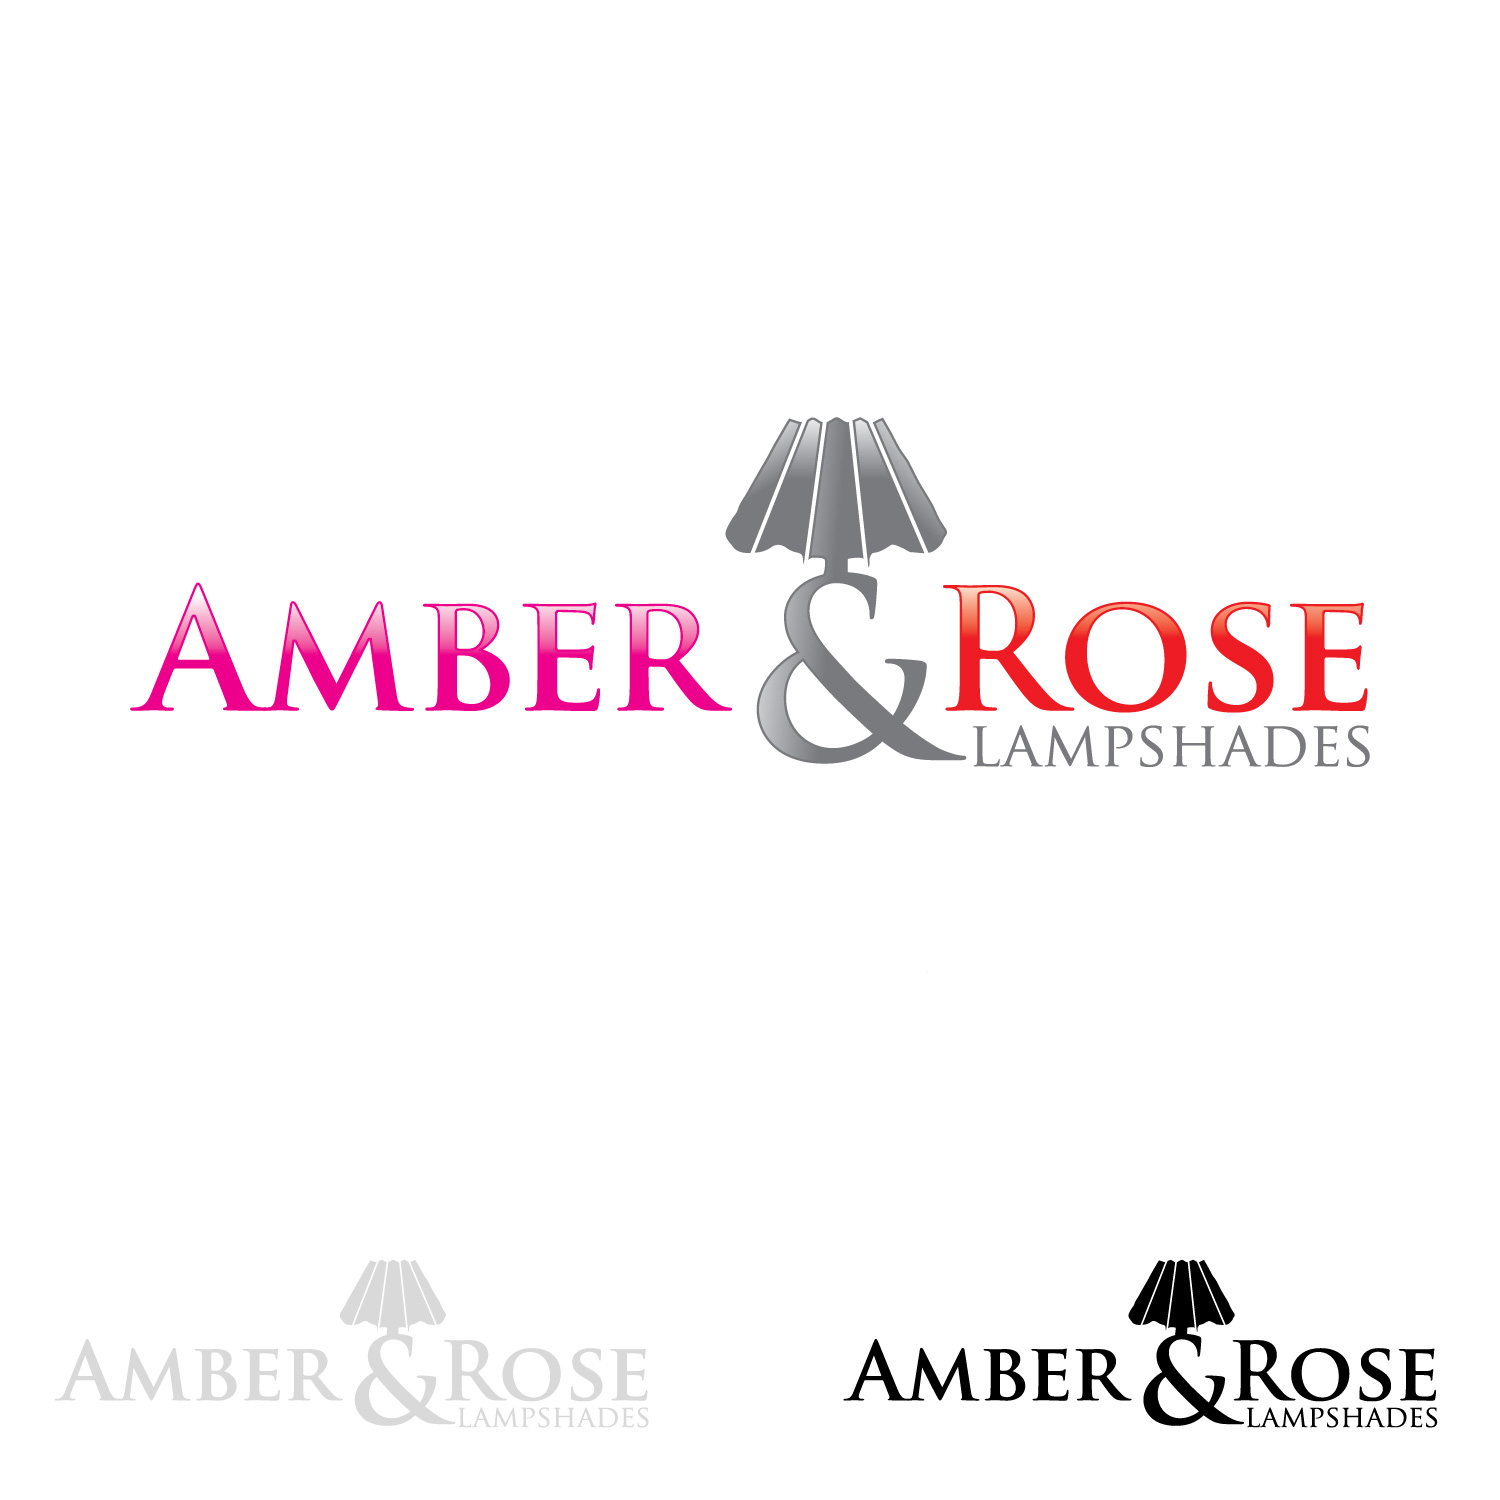 Logo Design by lagalag - Entry No. 14 in the Logo Design Contest Creative Logo Design for Amber & Rose.